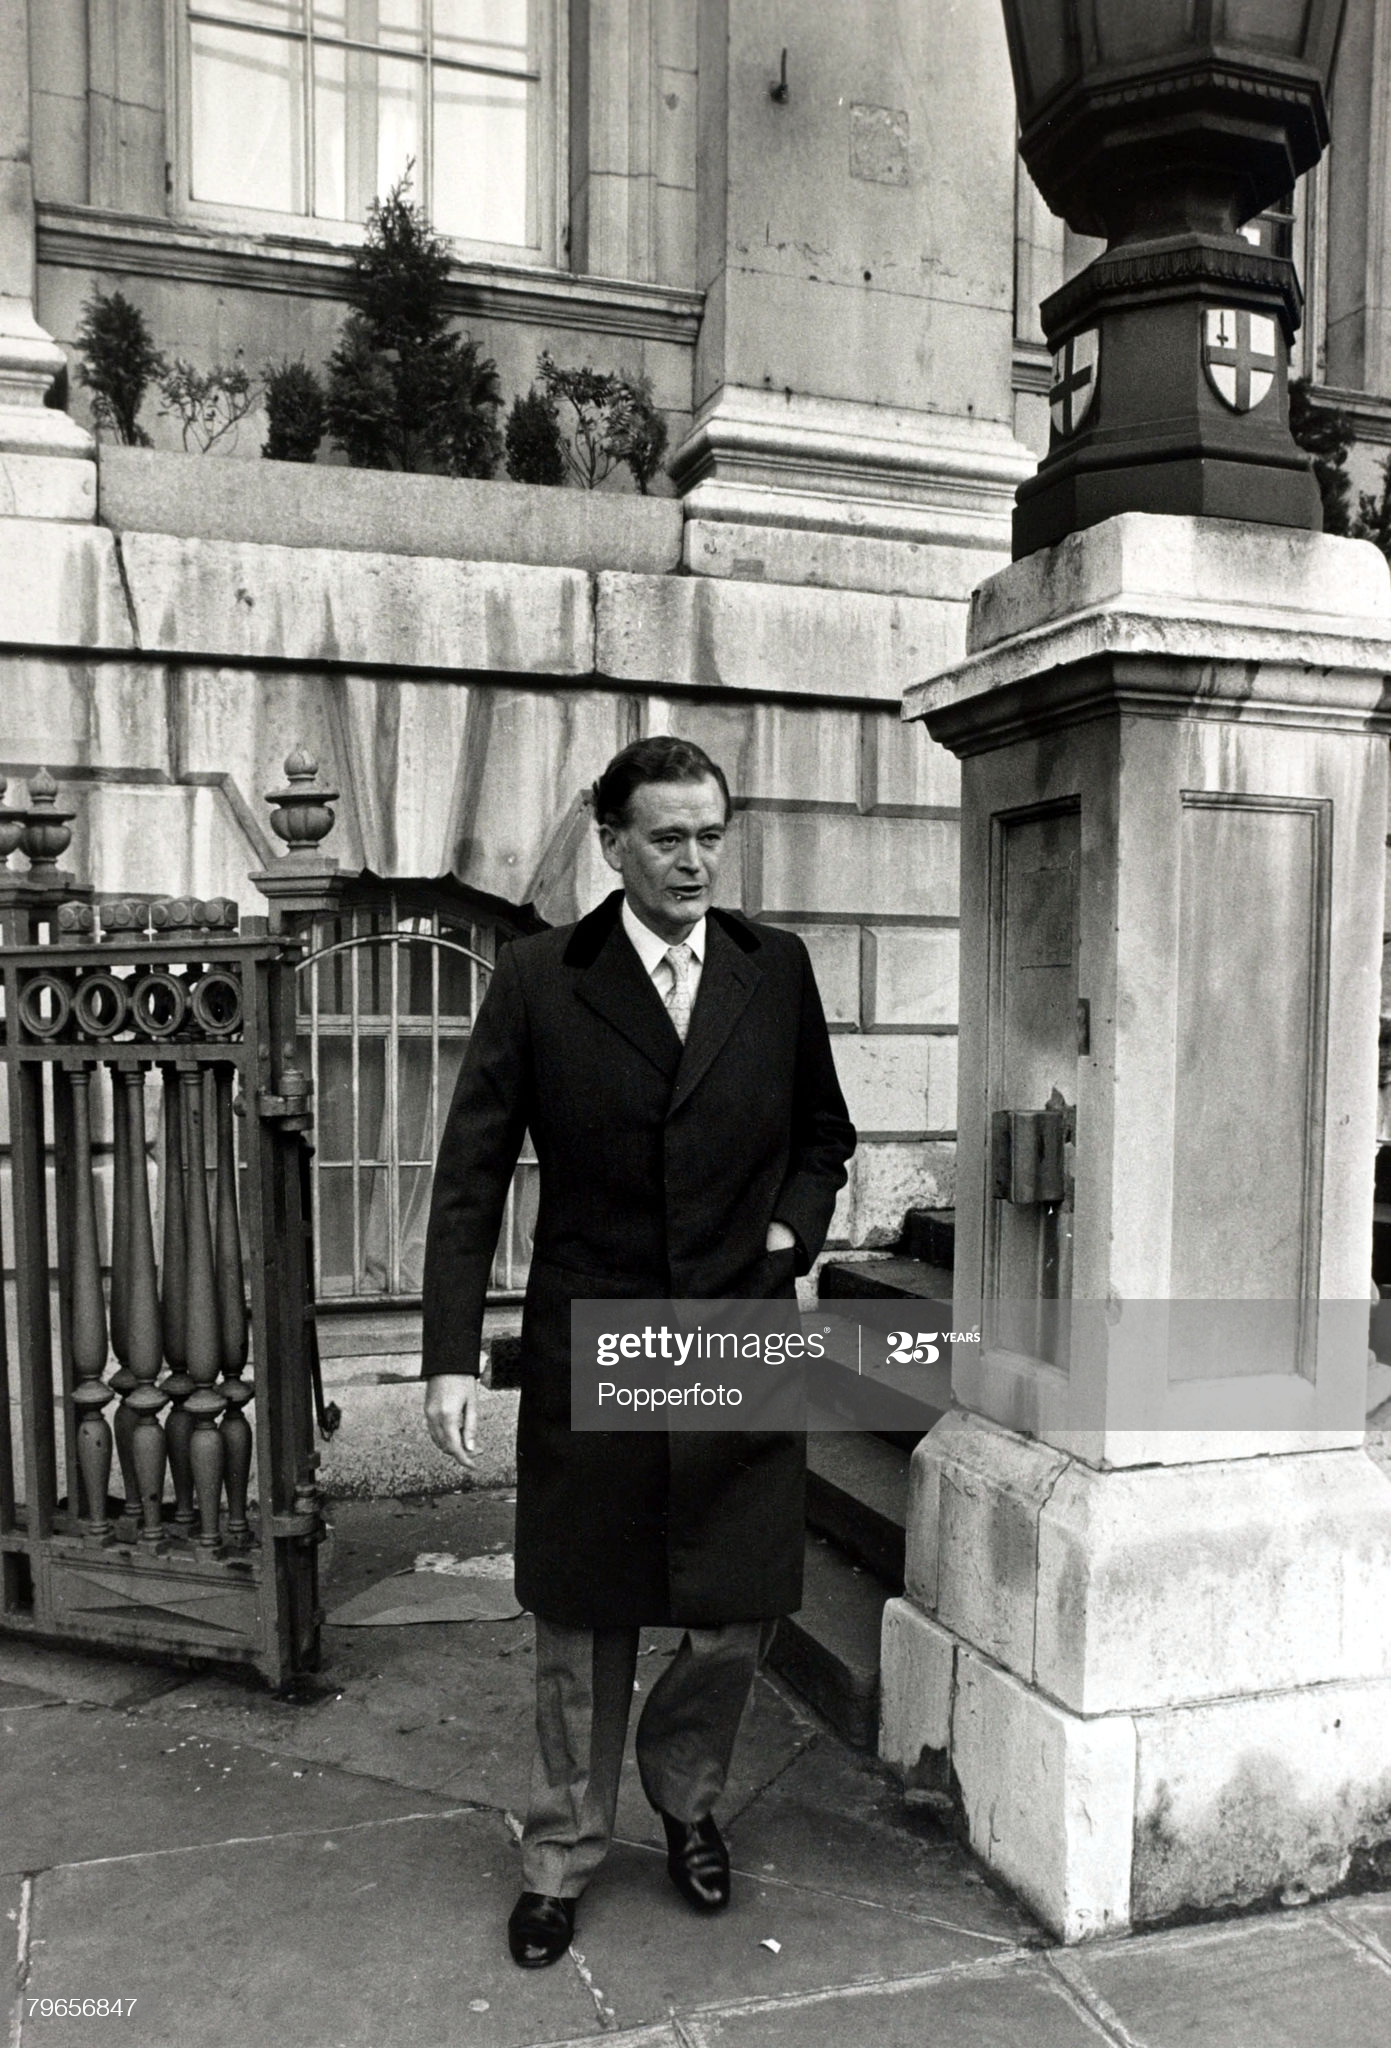 Personalities, Crime, pic: 3rd December 1976, Financier Jim Slater arriving at London's Mansion House Police Court to face fraud charges involving more than 4,000,000 (Photo by Popperfoto via Getty Images/Getty Images)